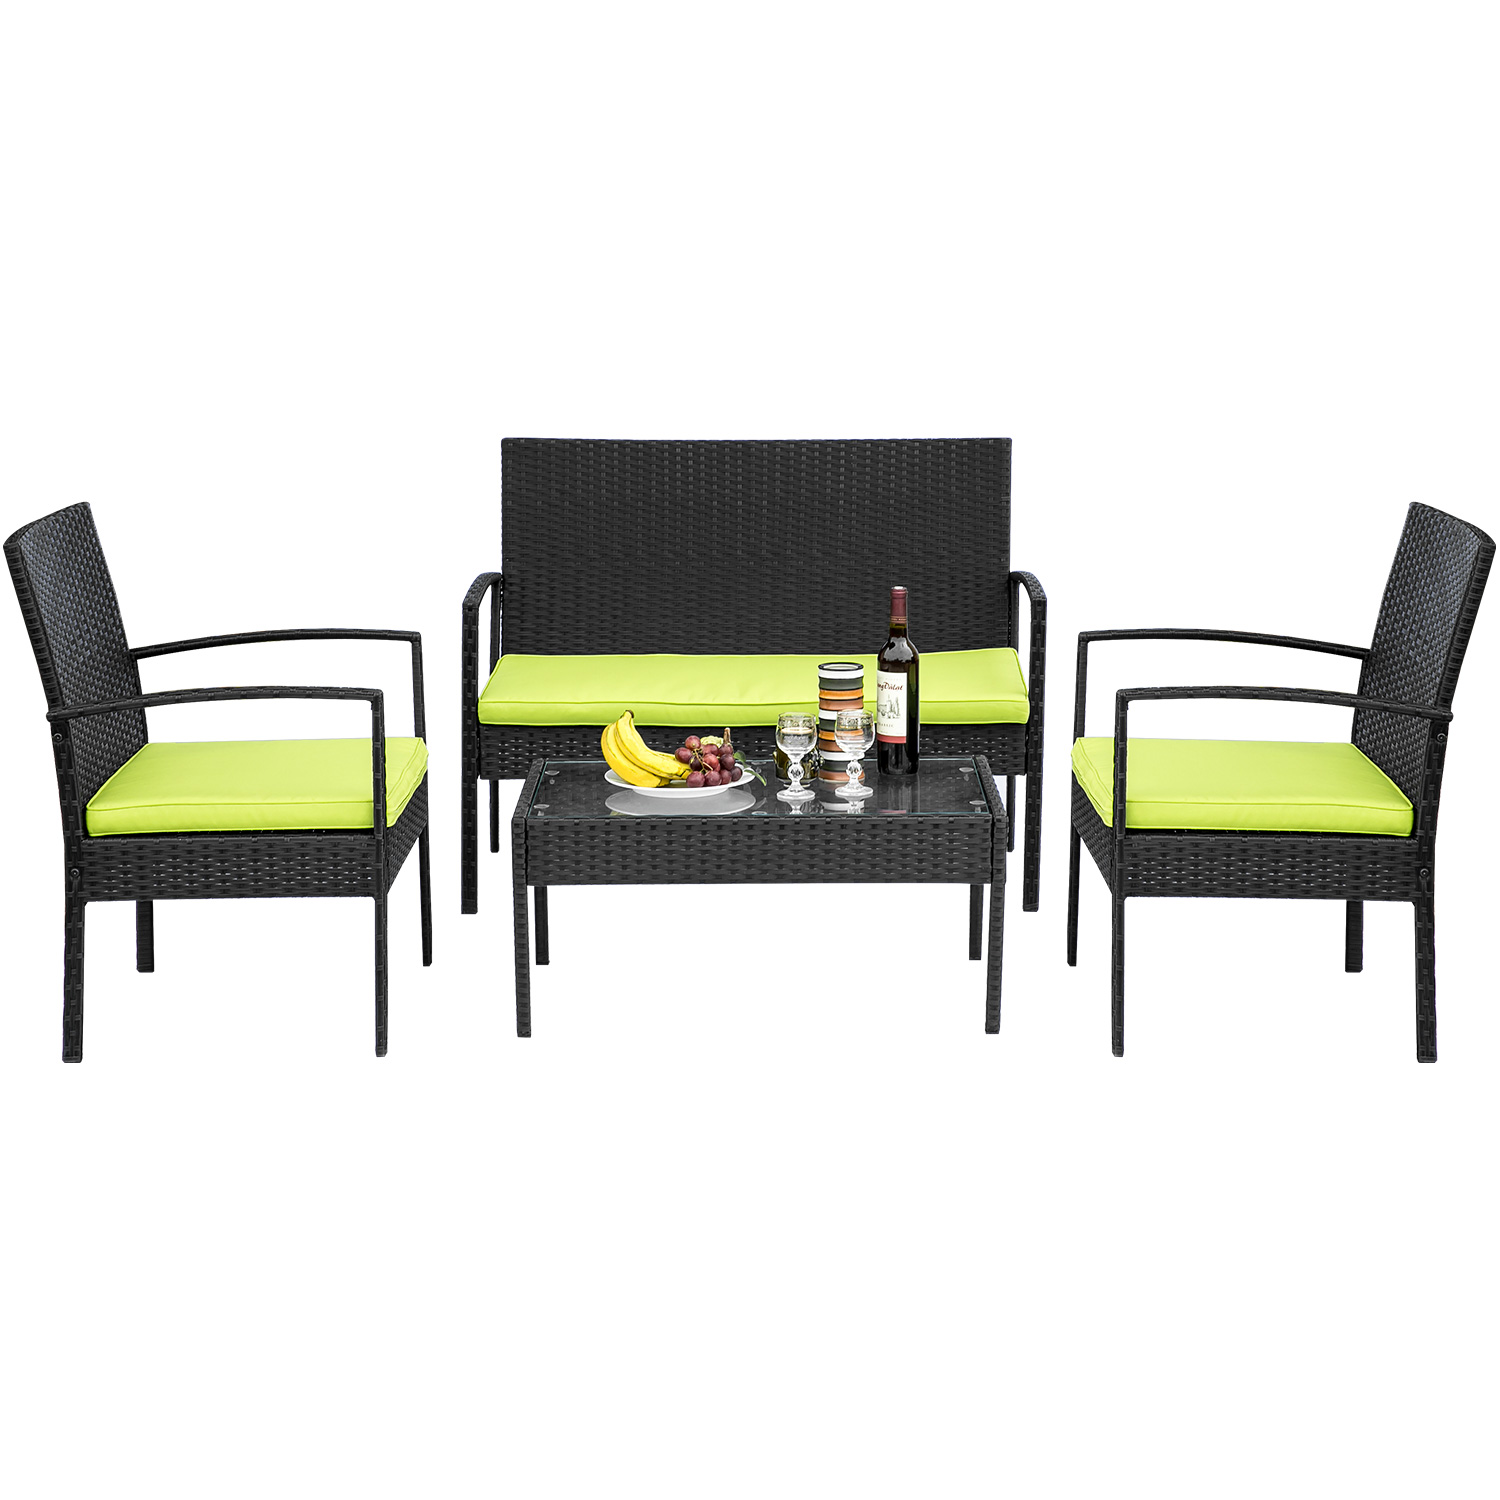 [US DIRECT] 4 Pcs Rattan Patio Furniture Set Outdoor Sofa Chair Cushioned Seat Fishing Chair Tempered Folding Glass Table